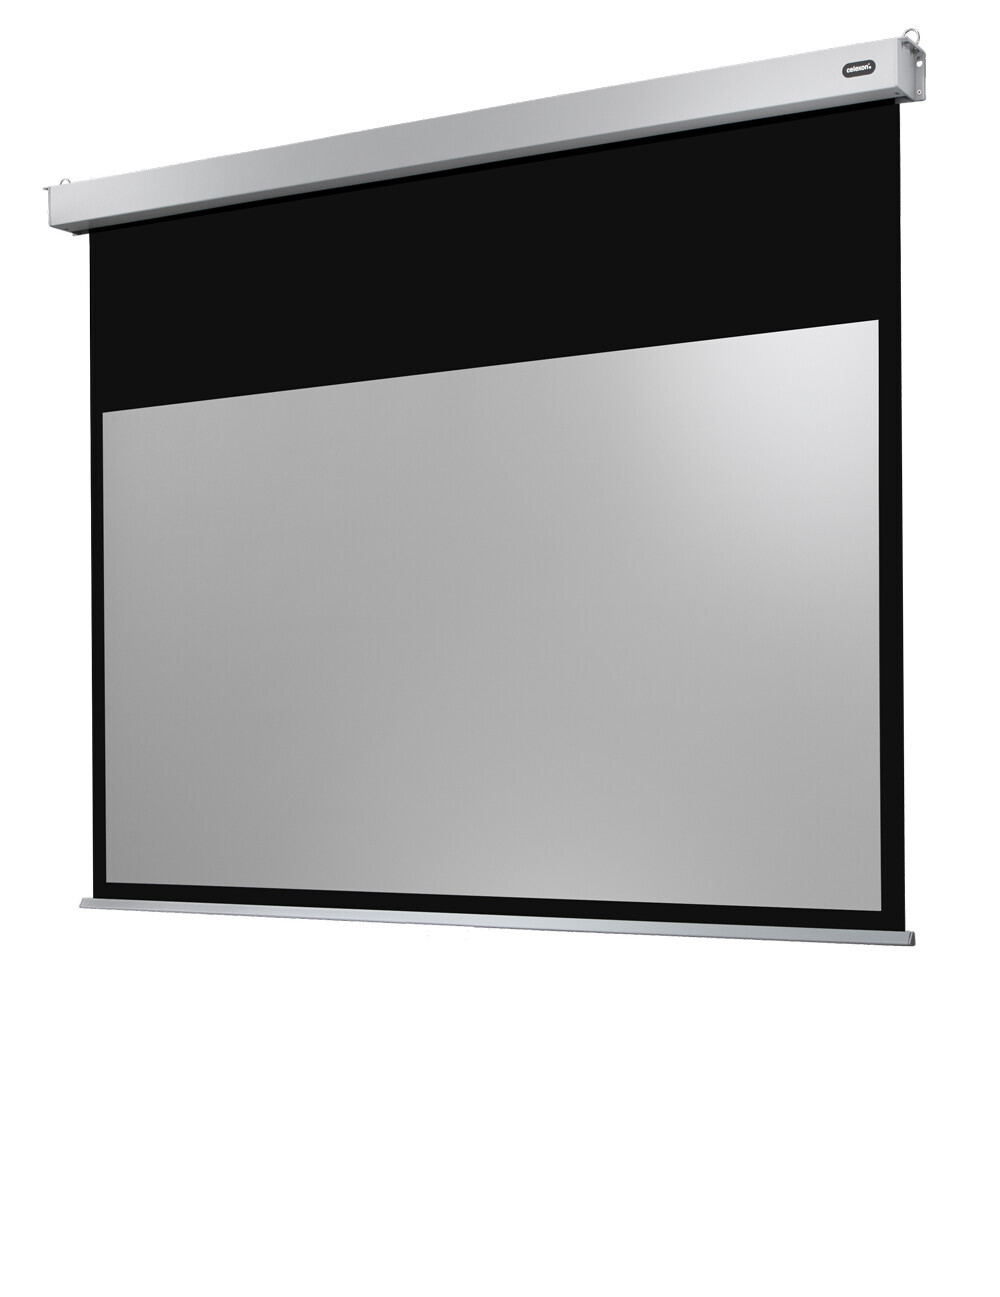 Ecran de projection celexon Motorisé PRO PLUS 280 x 175cm